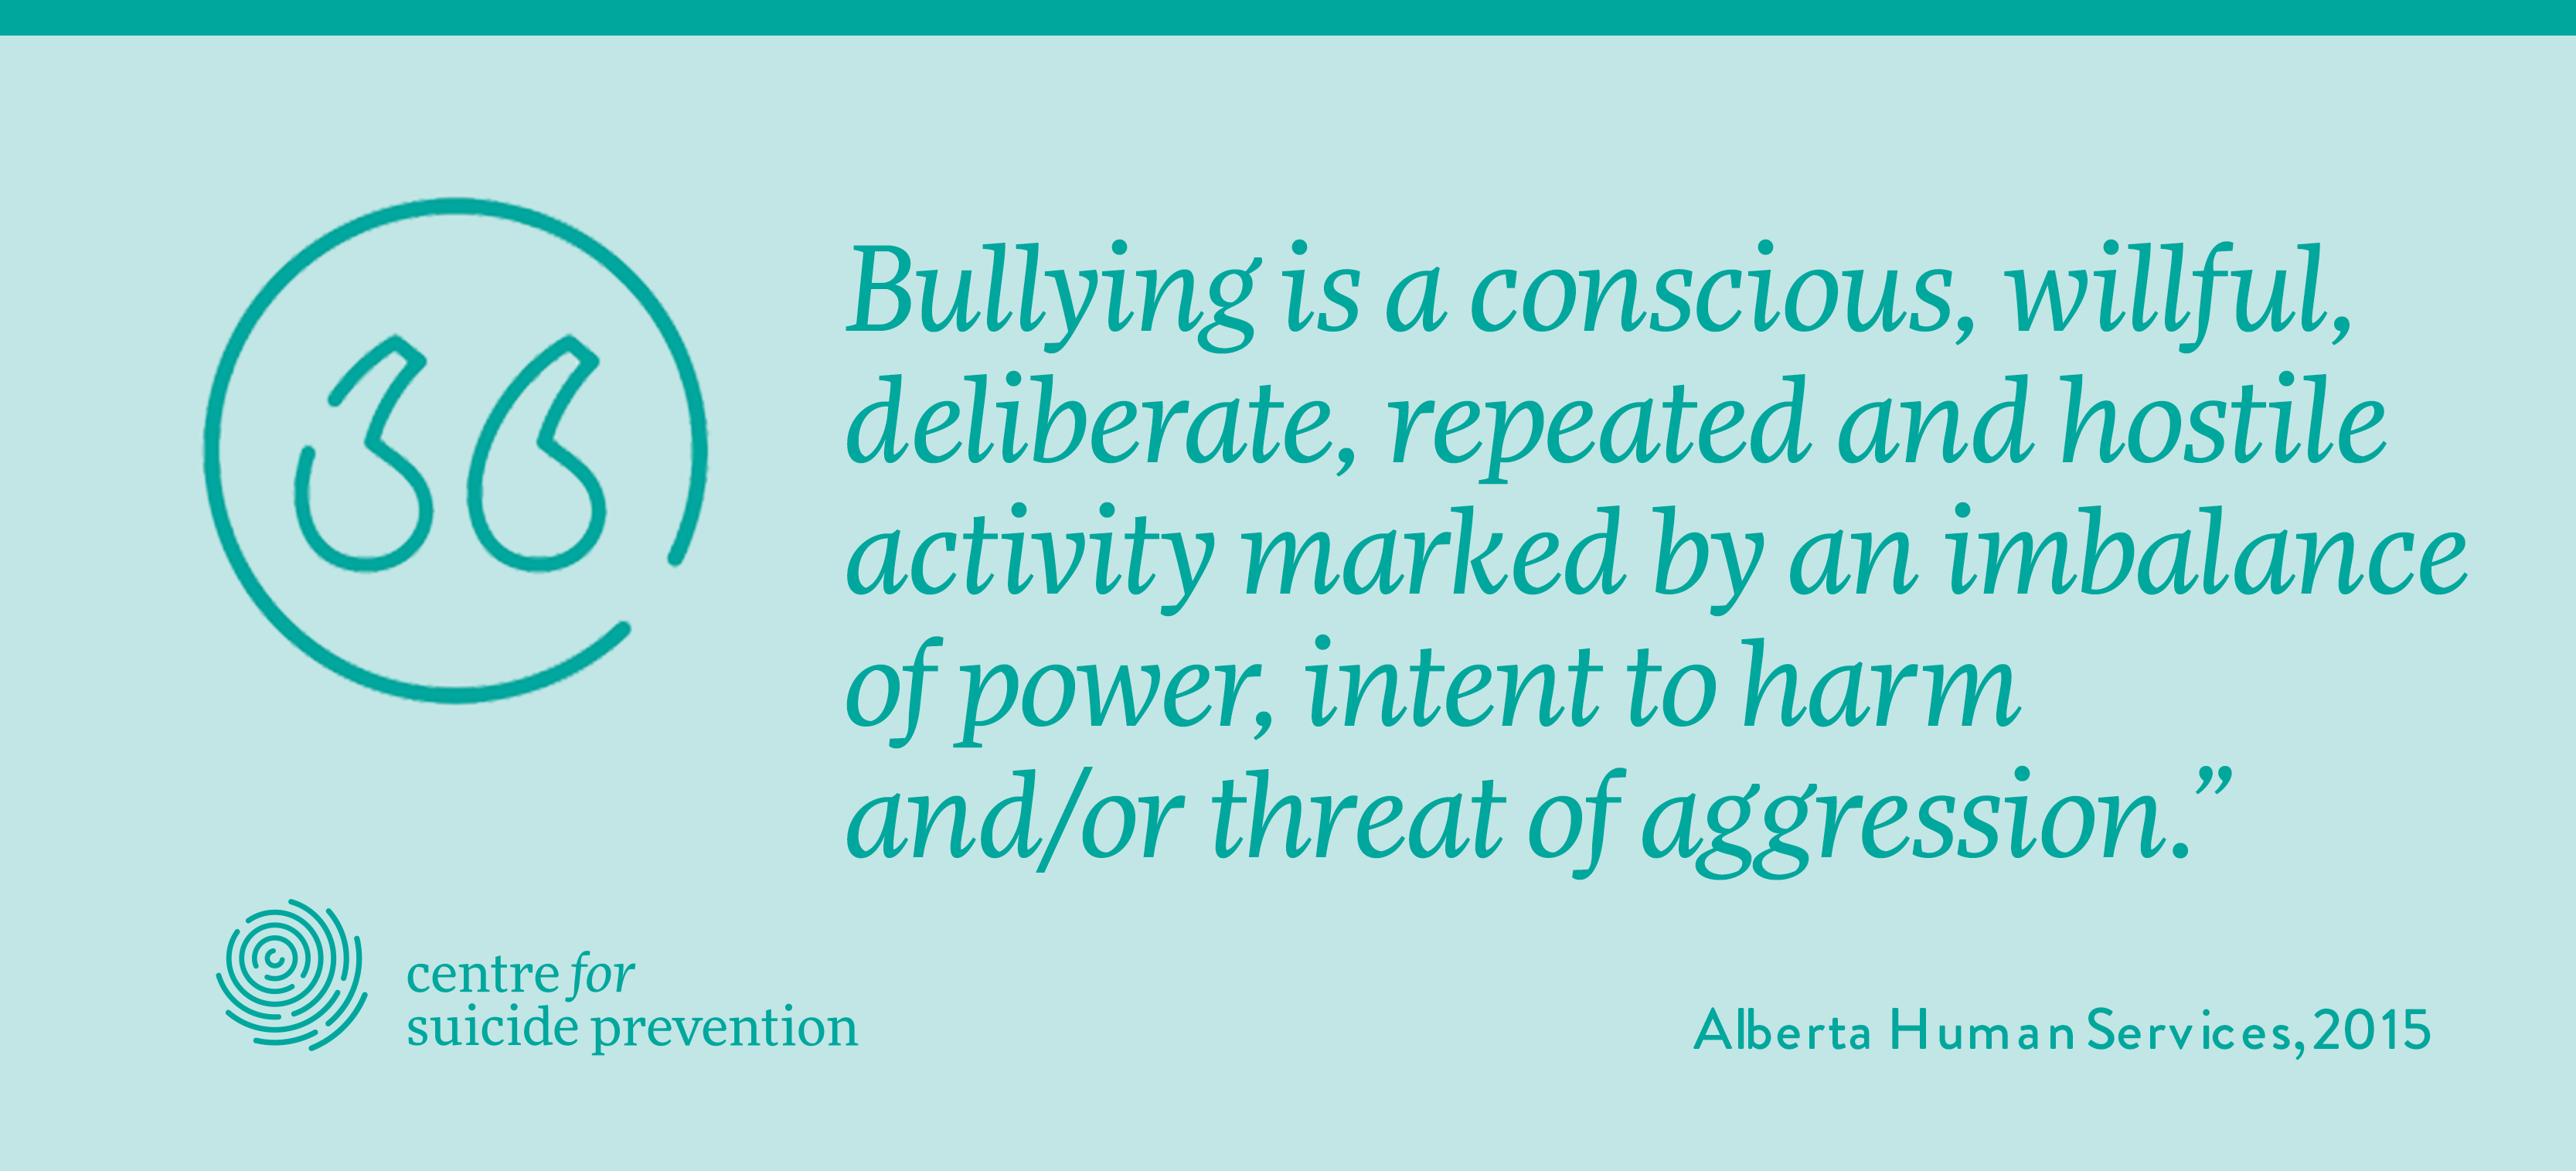 Bullying is a conscious, willful, deliberate, repeated and hostile activity marked by an imbalance of power, intent to harm and/or threat of aggression.""